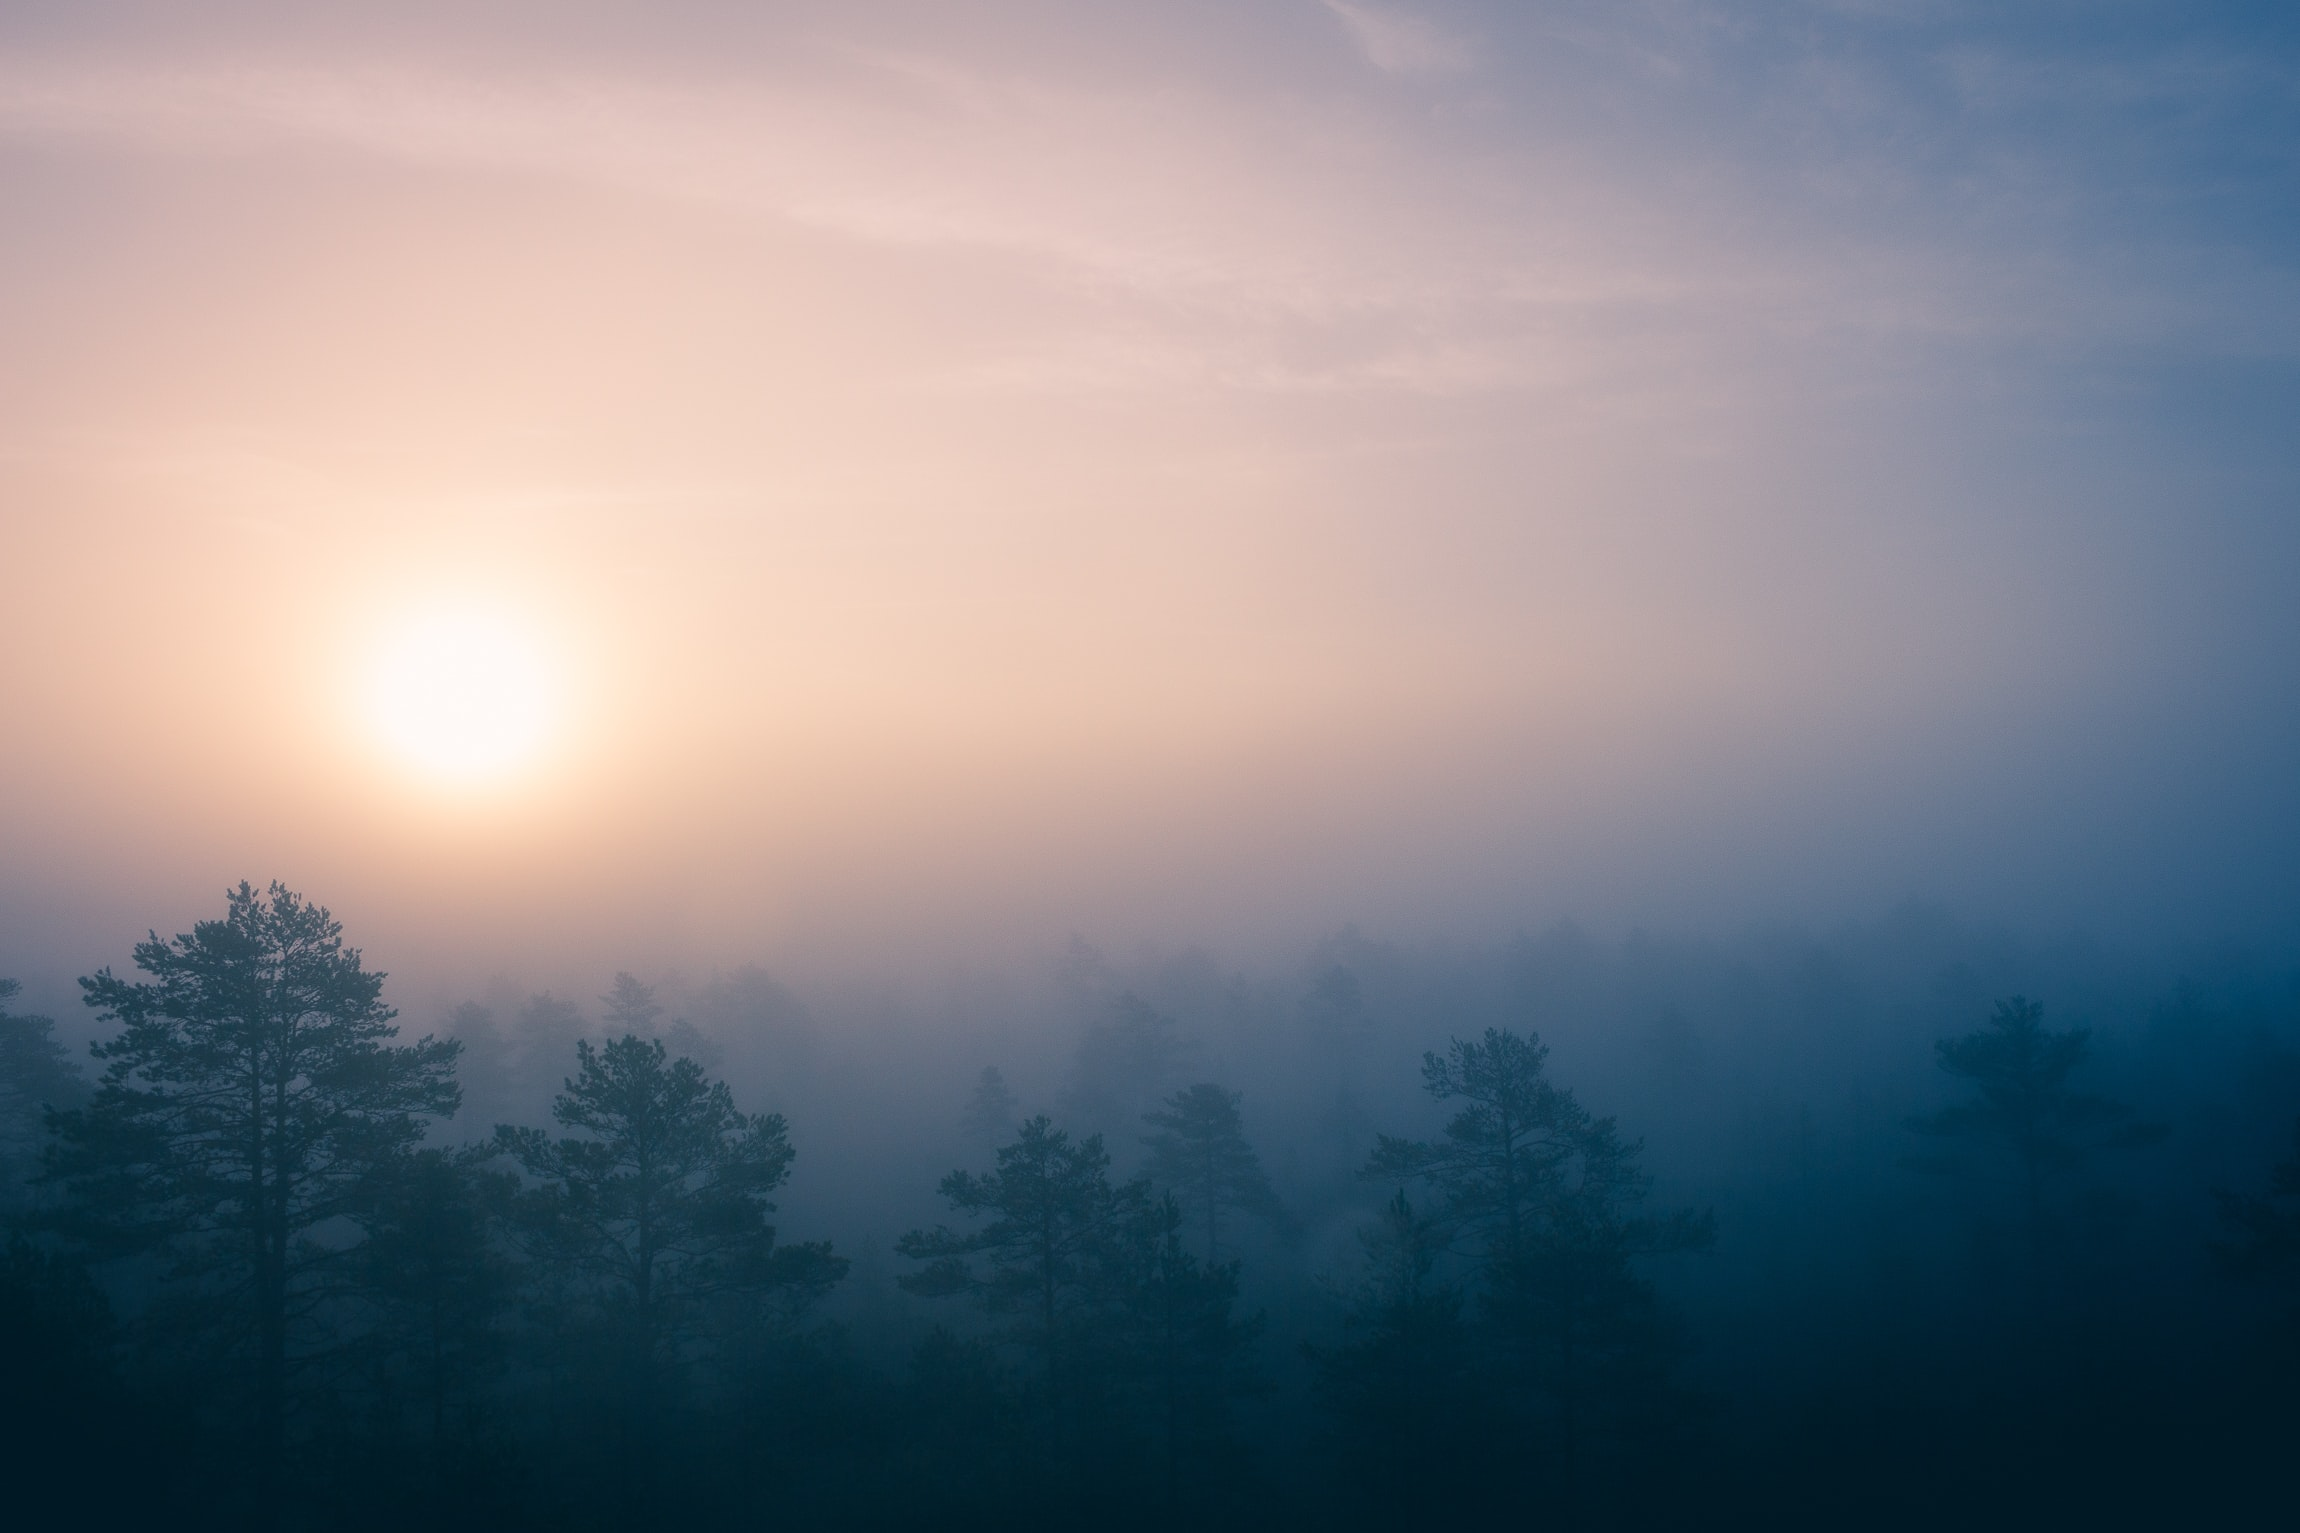 green trees covered with fogs during sunrise